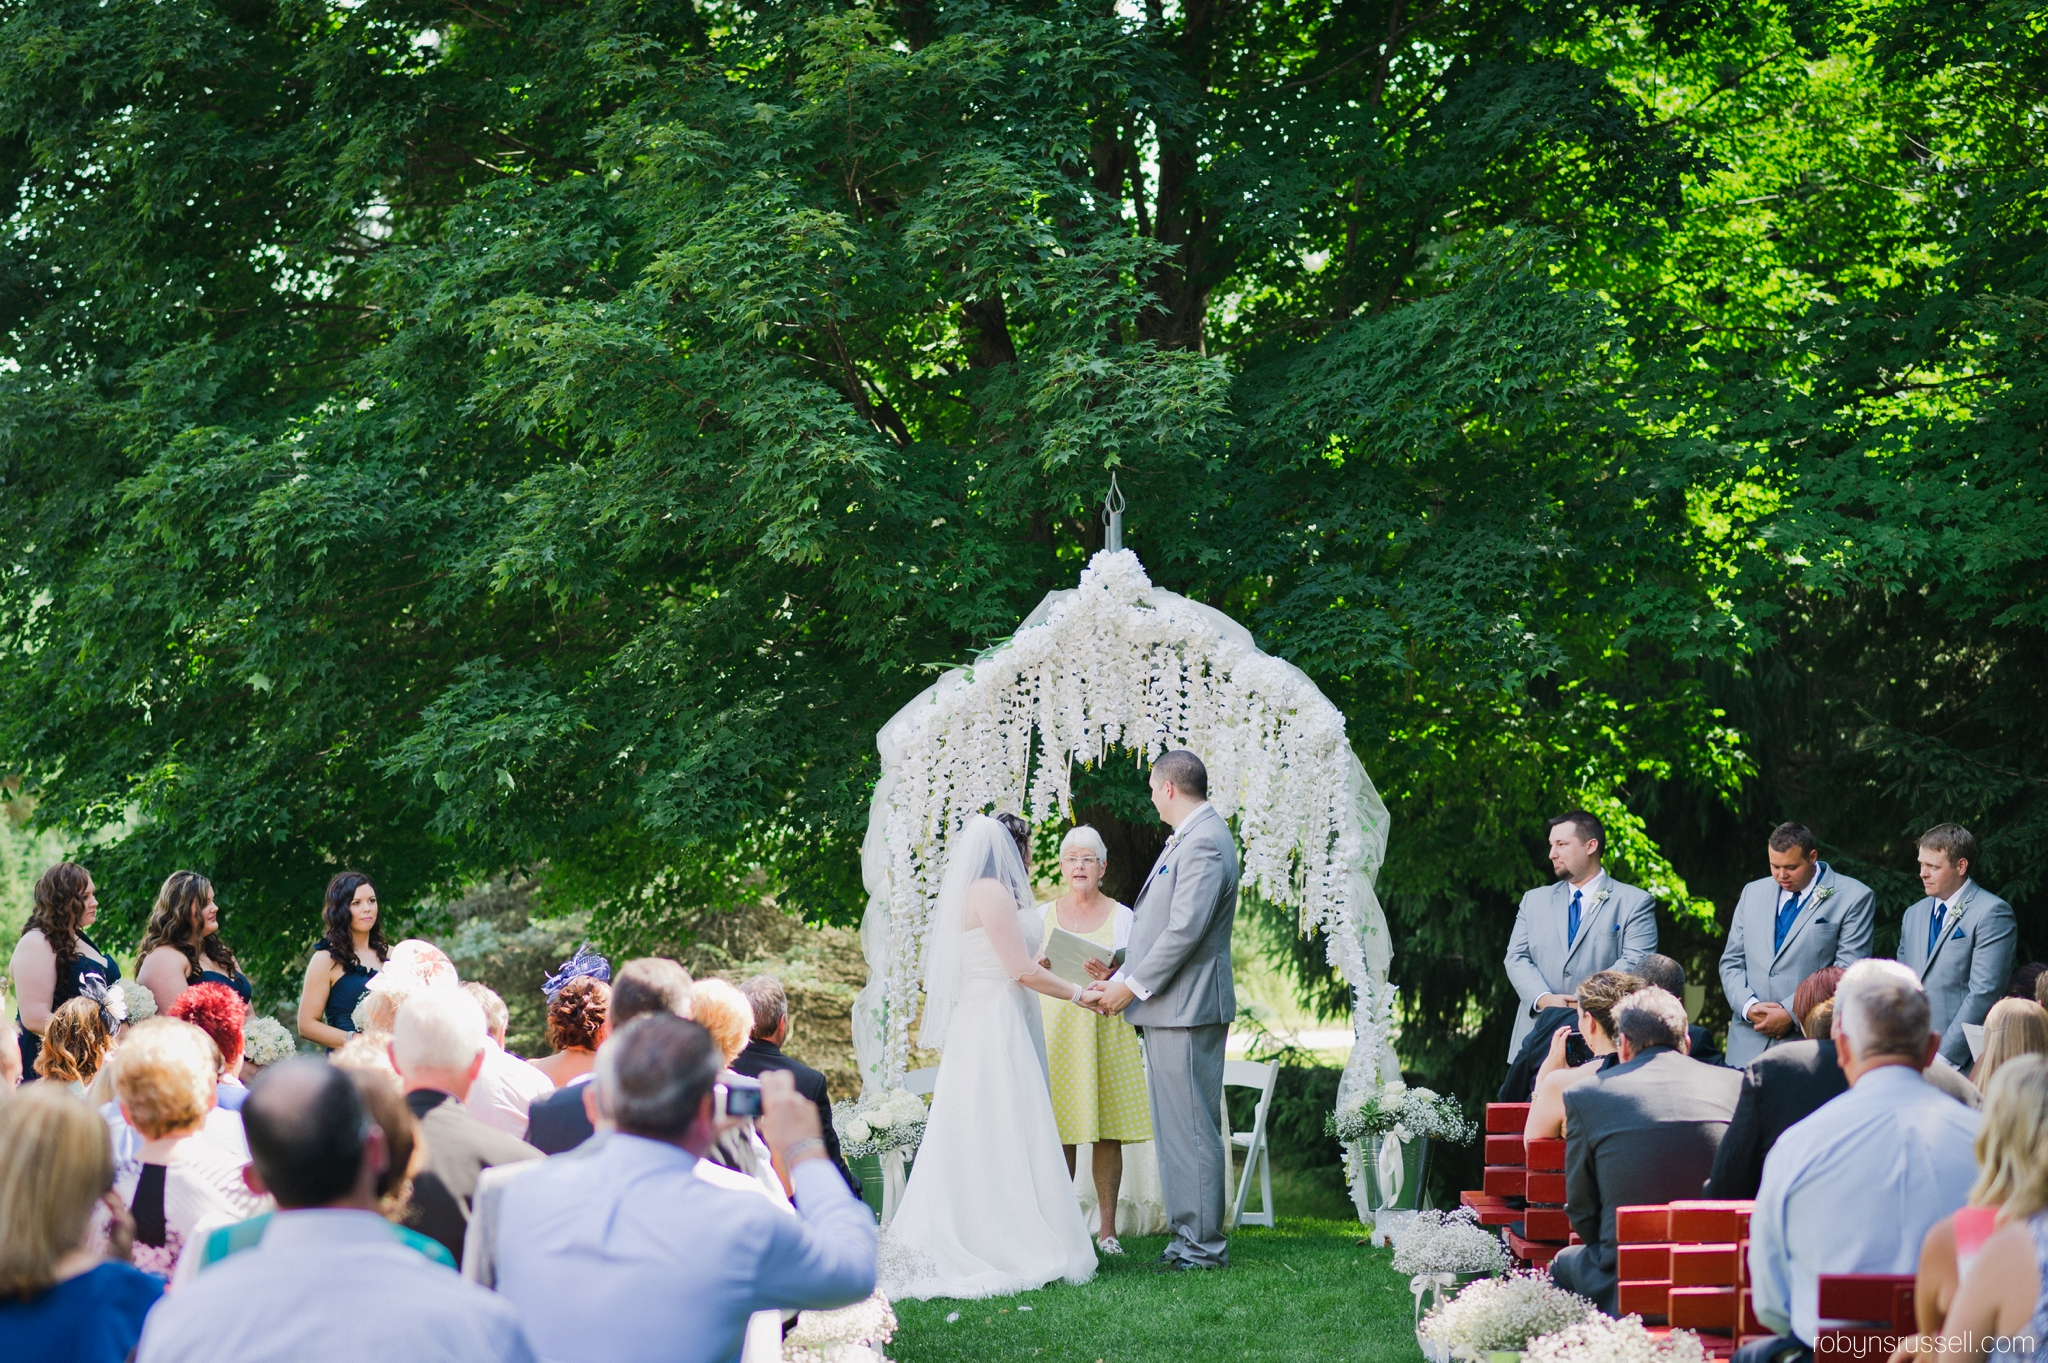 20-beautiful-wedding-drysdale-tree-farm-barrie.jpg